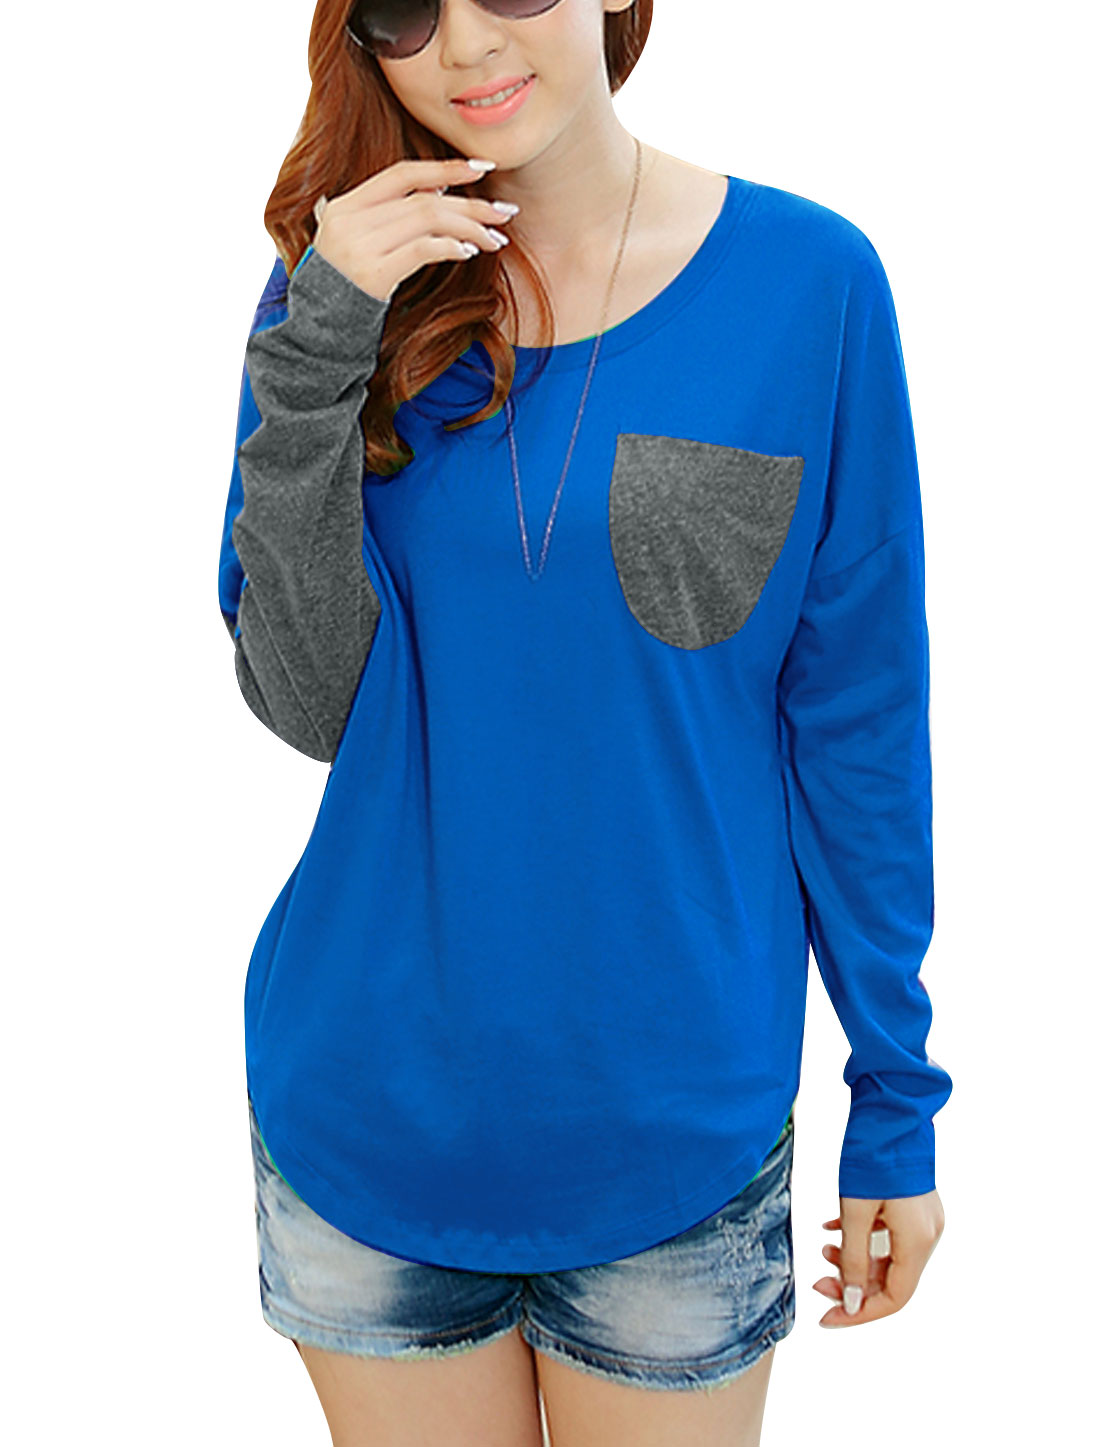 Ladies Long Sleeve Round Neck One Chest Pocket Tee Shirt Royal Blue Gray XS